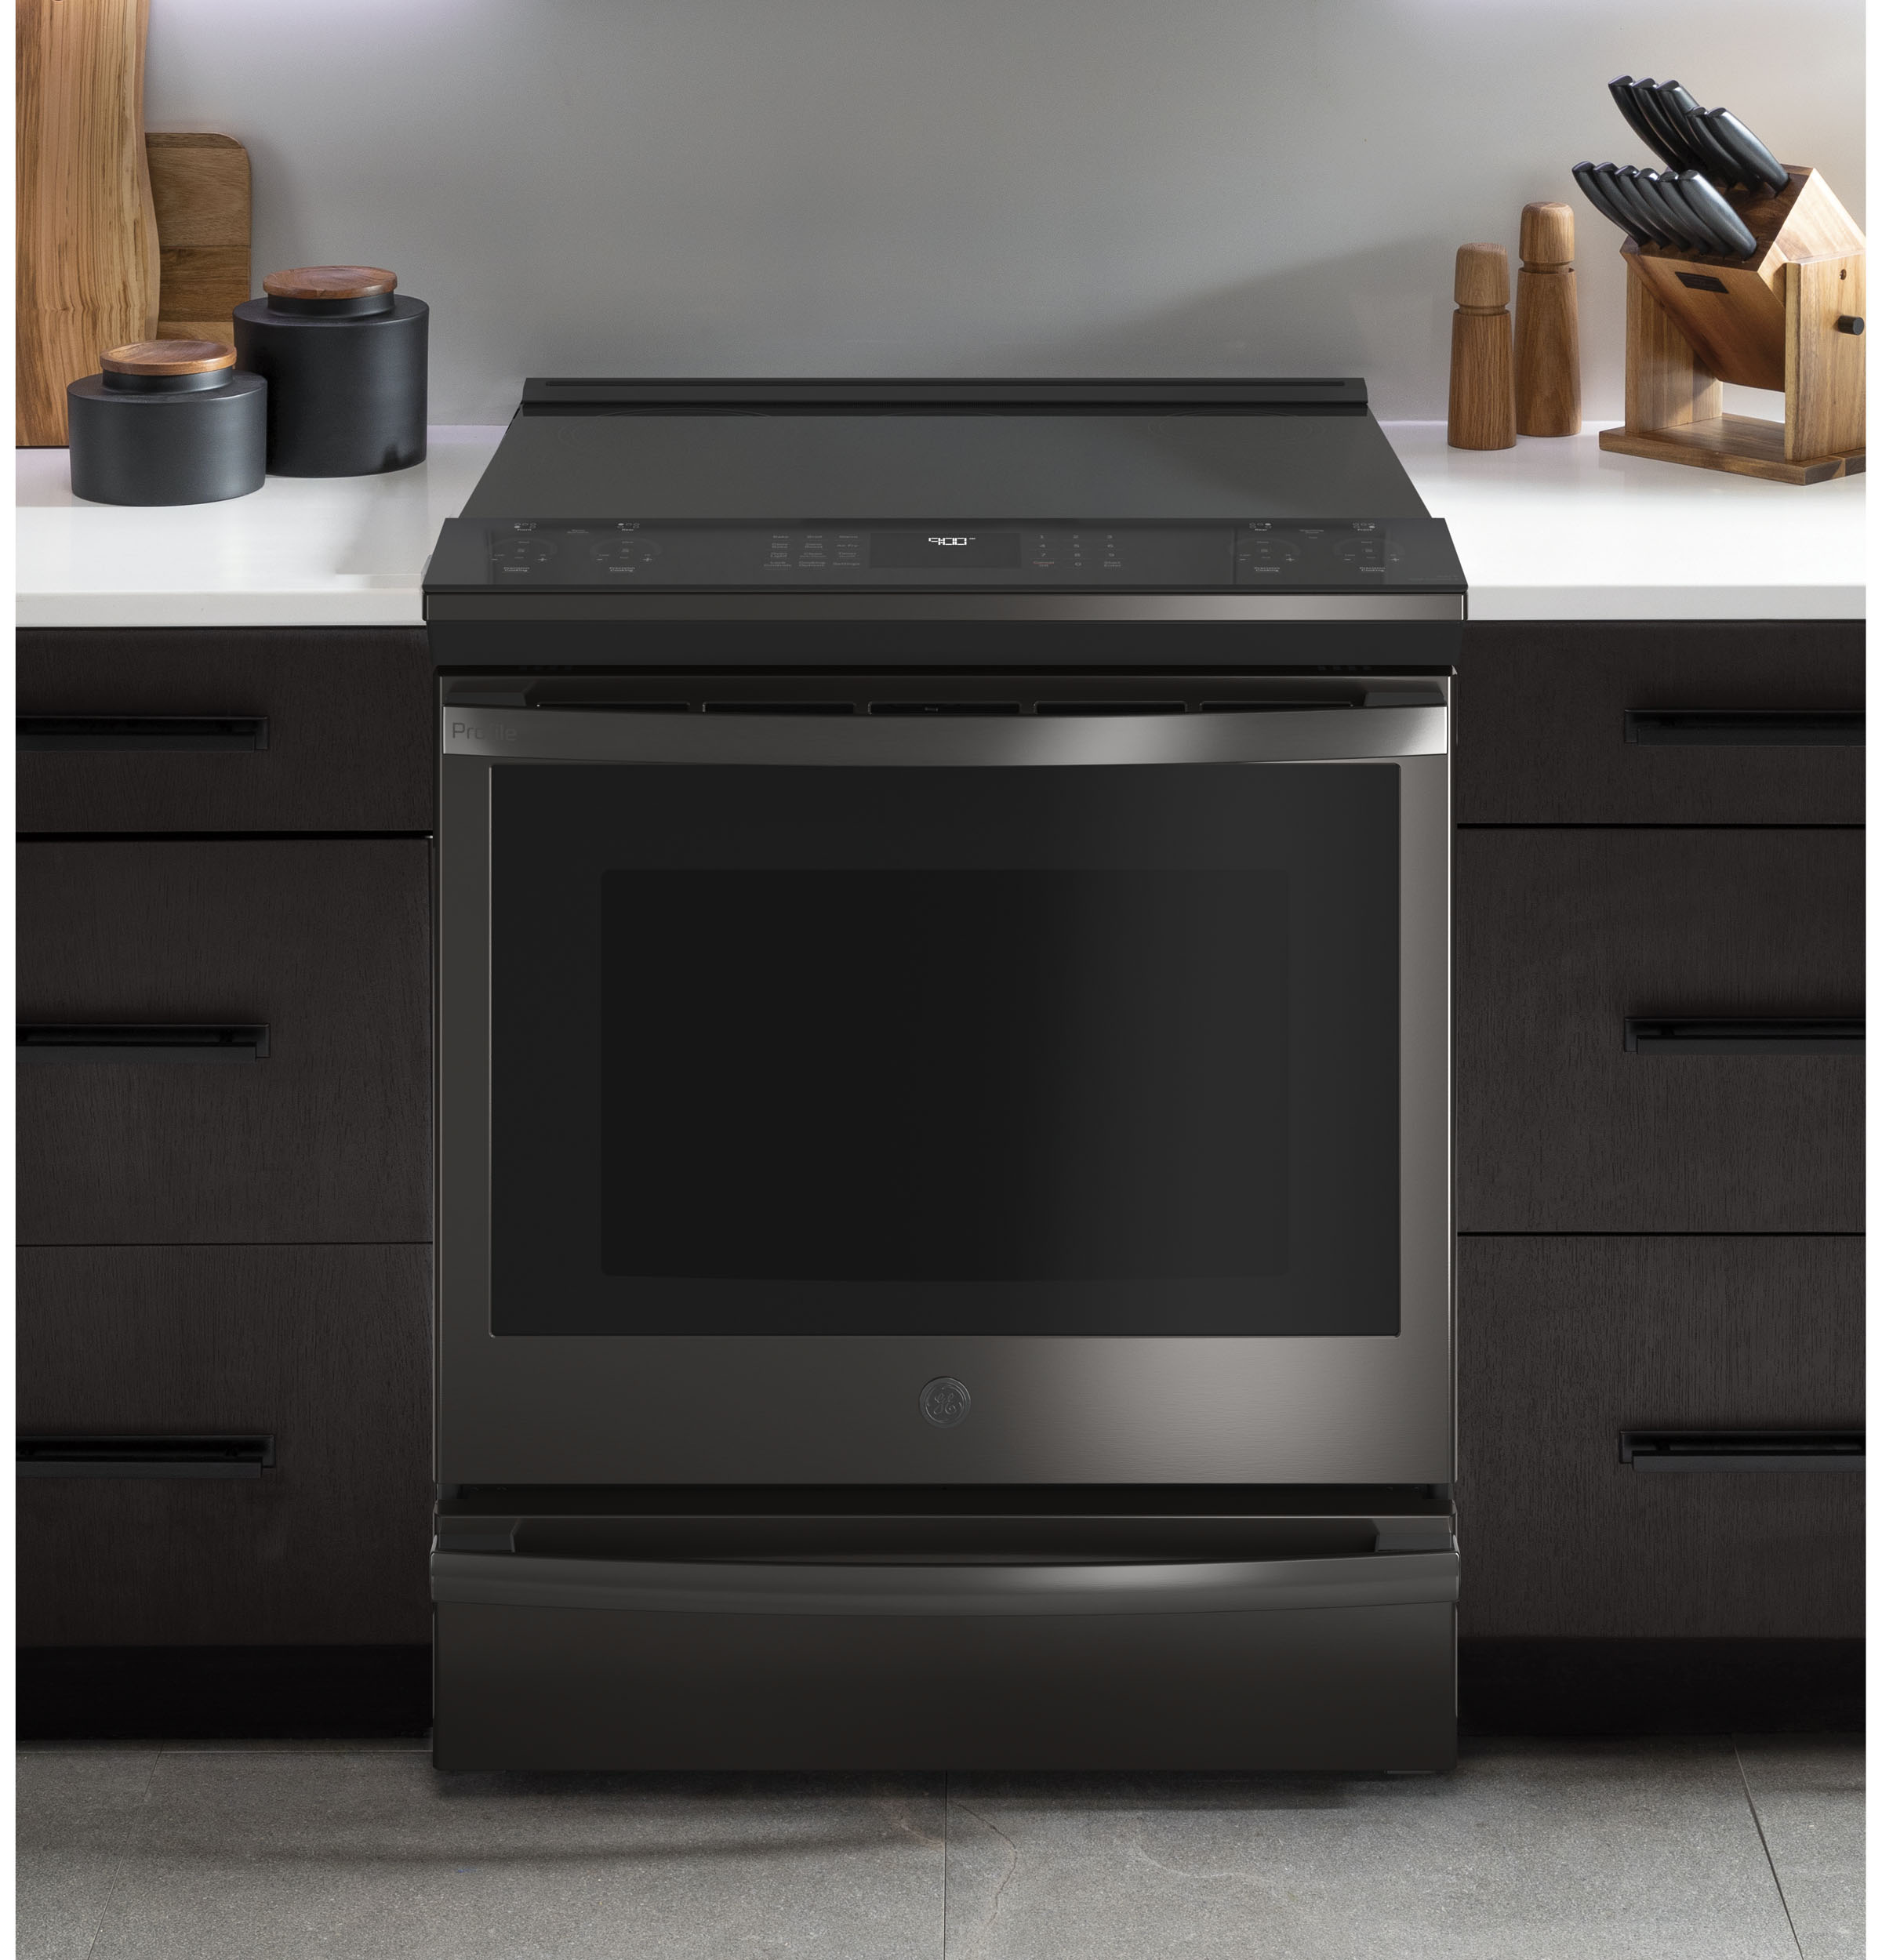 "Model: PHS930BPTS | GE Profile GE Profile™ 30"" Smart Slide-In Front-Control Induction and Convection Range with No Preheat Air Fry"